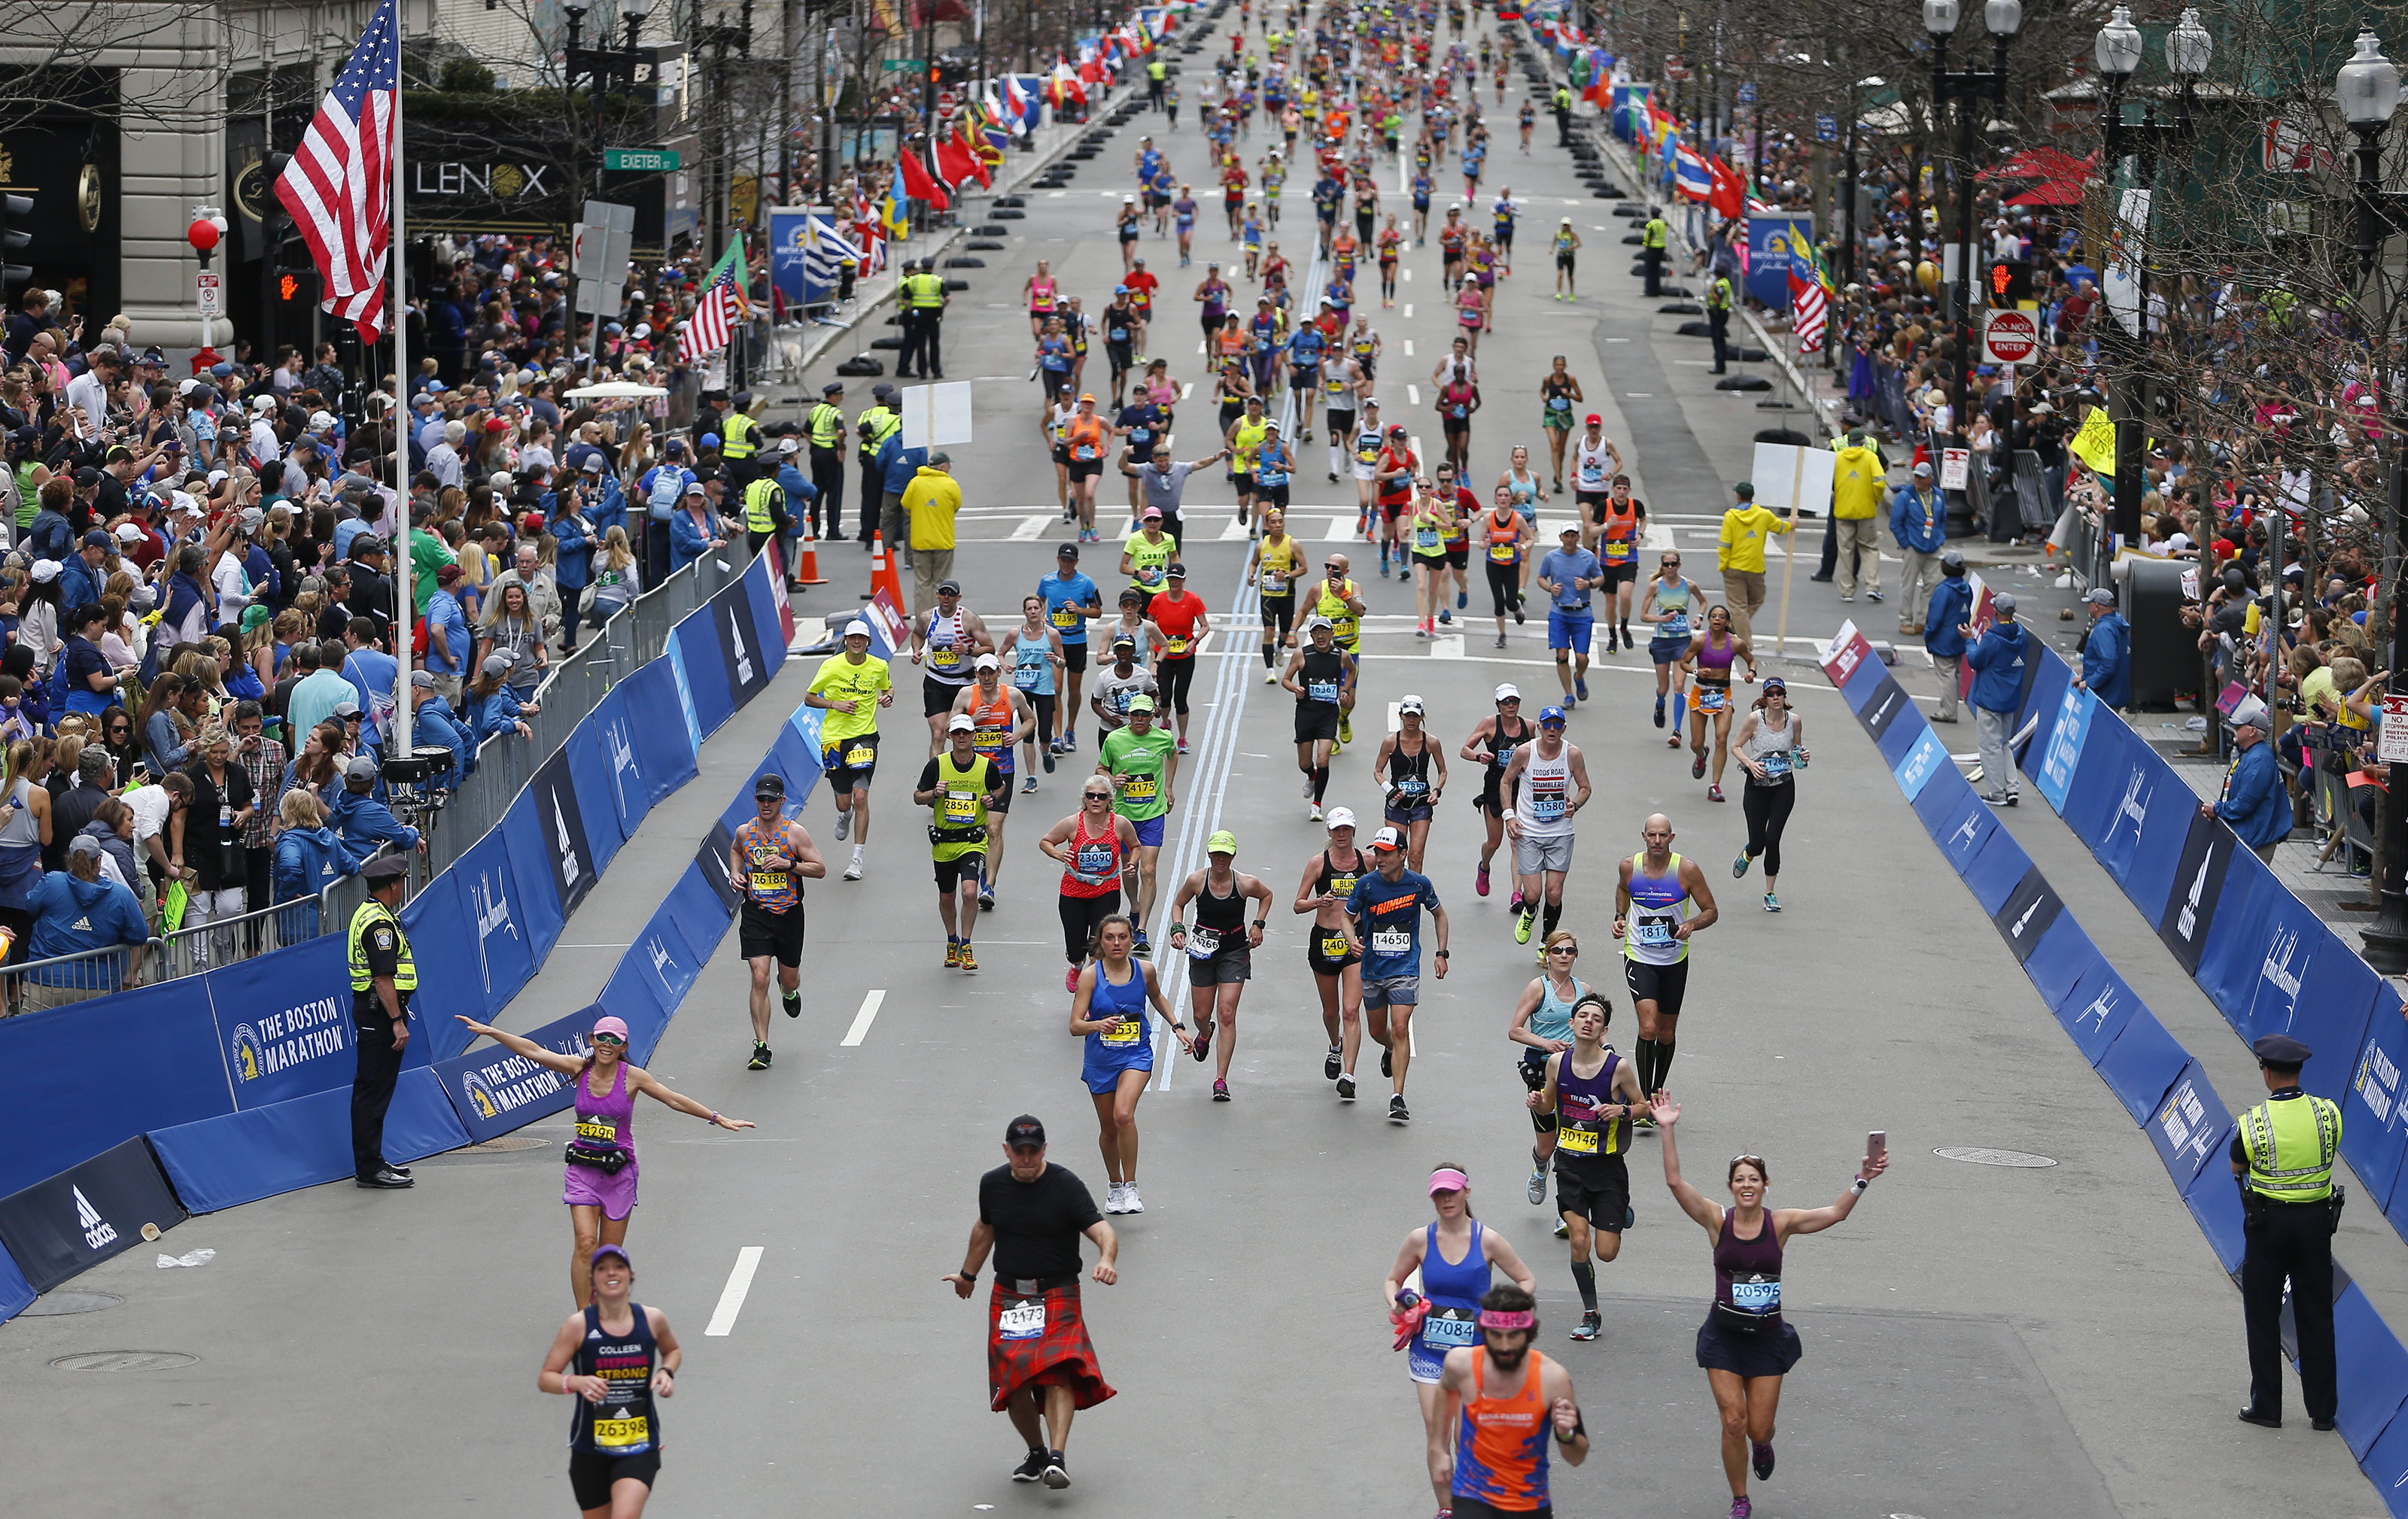 Runners make their way toward the finish line of the 121st Boston Marathon in Boston on Apr. 17, 2017.